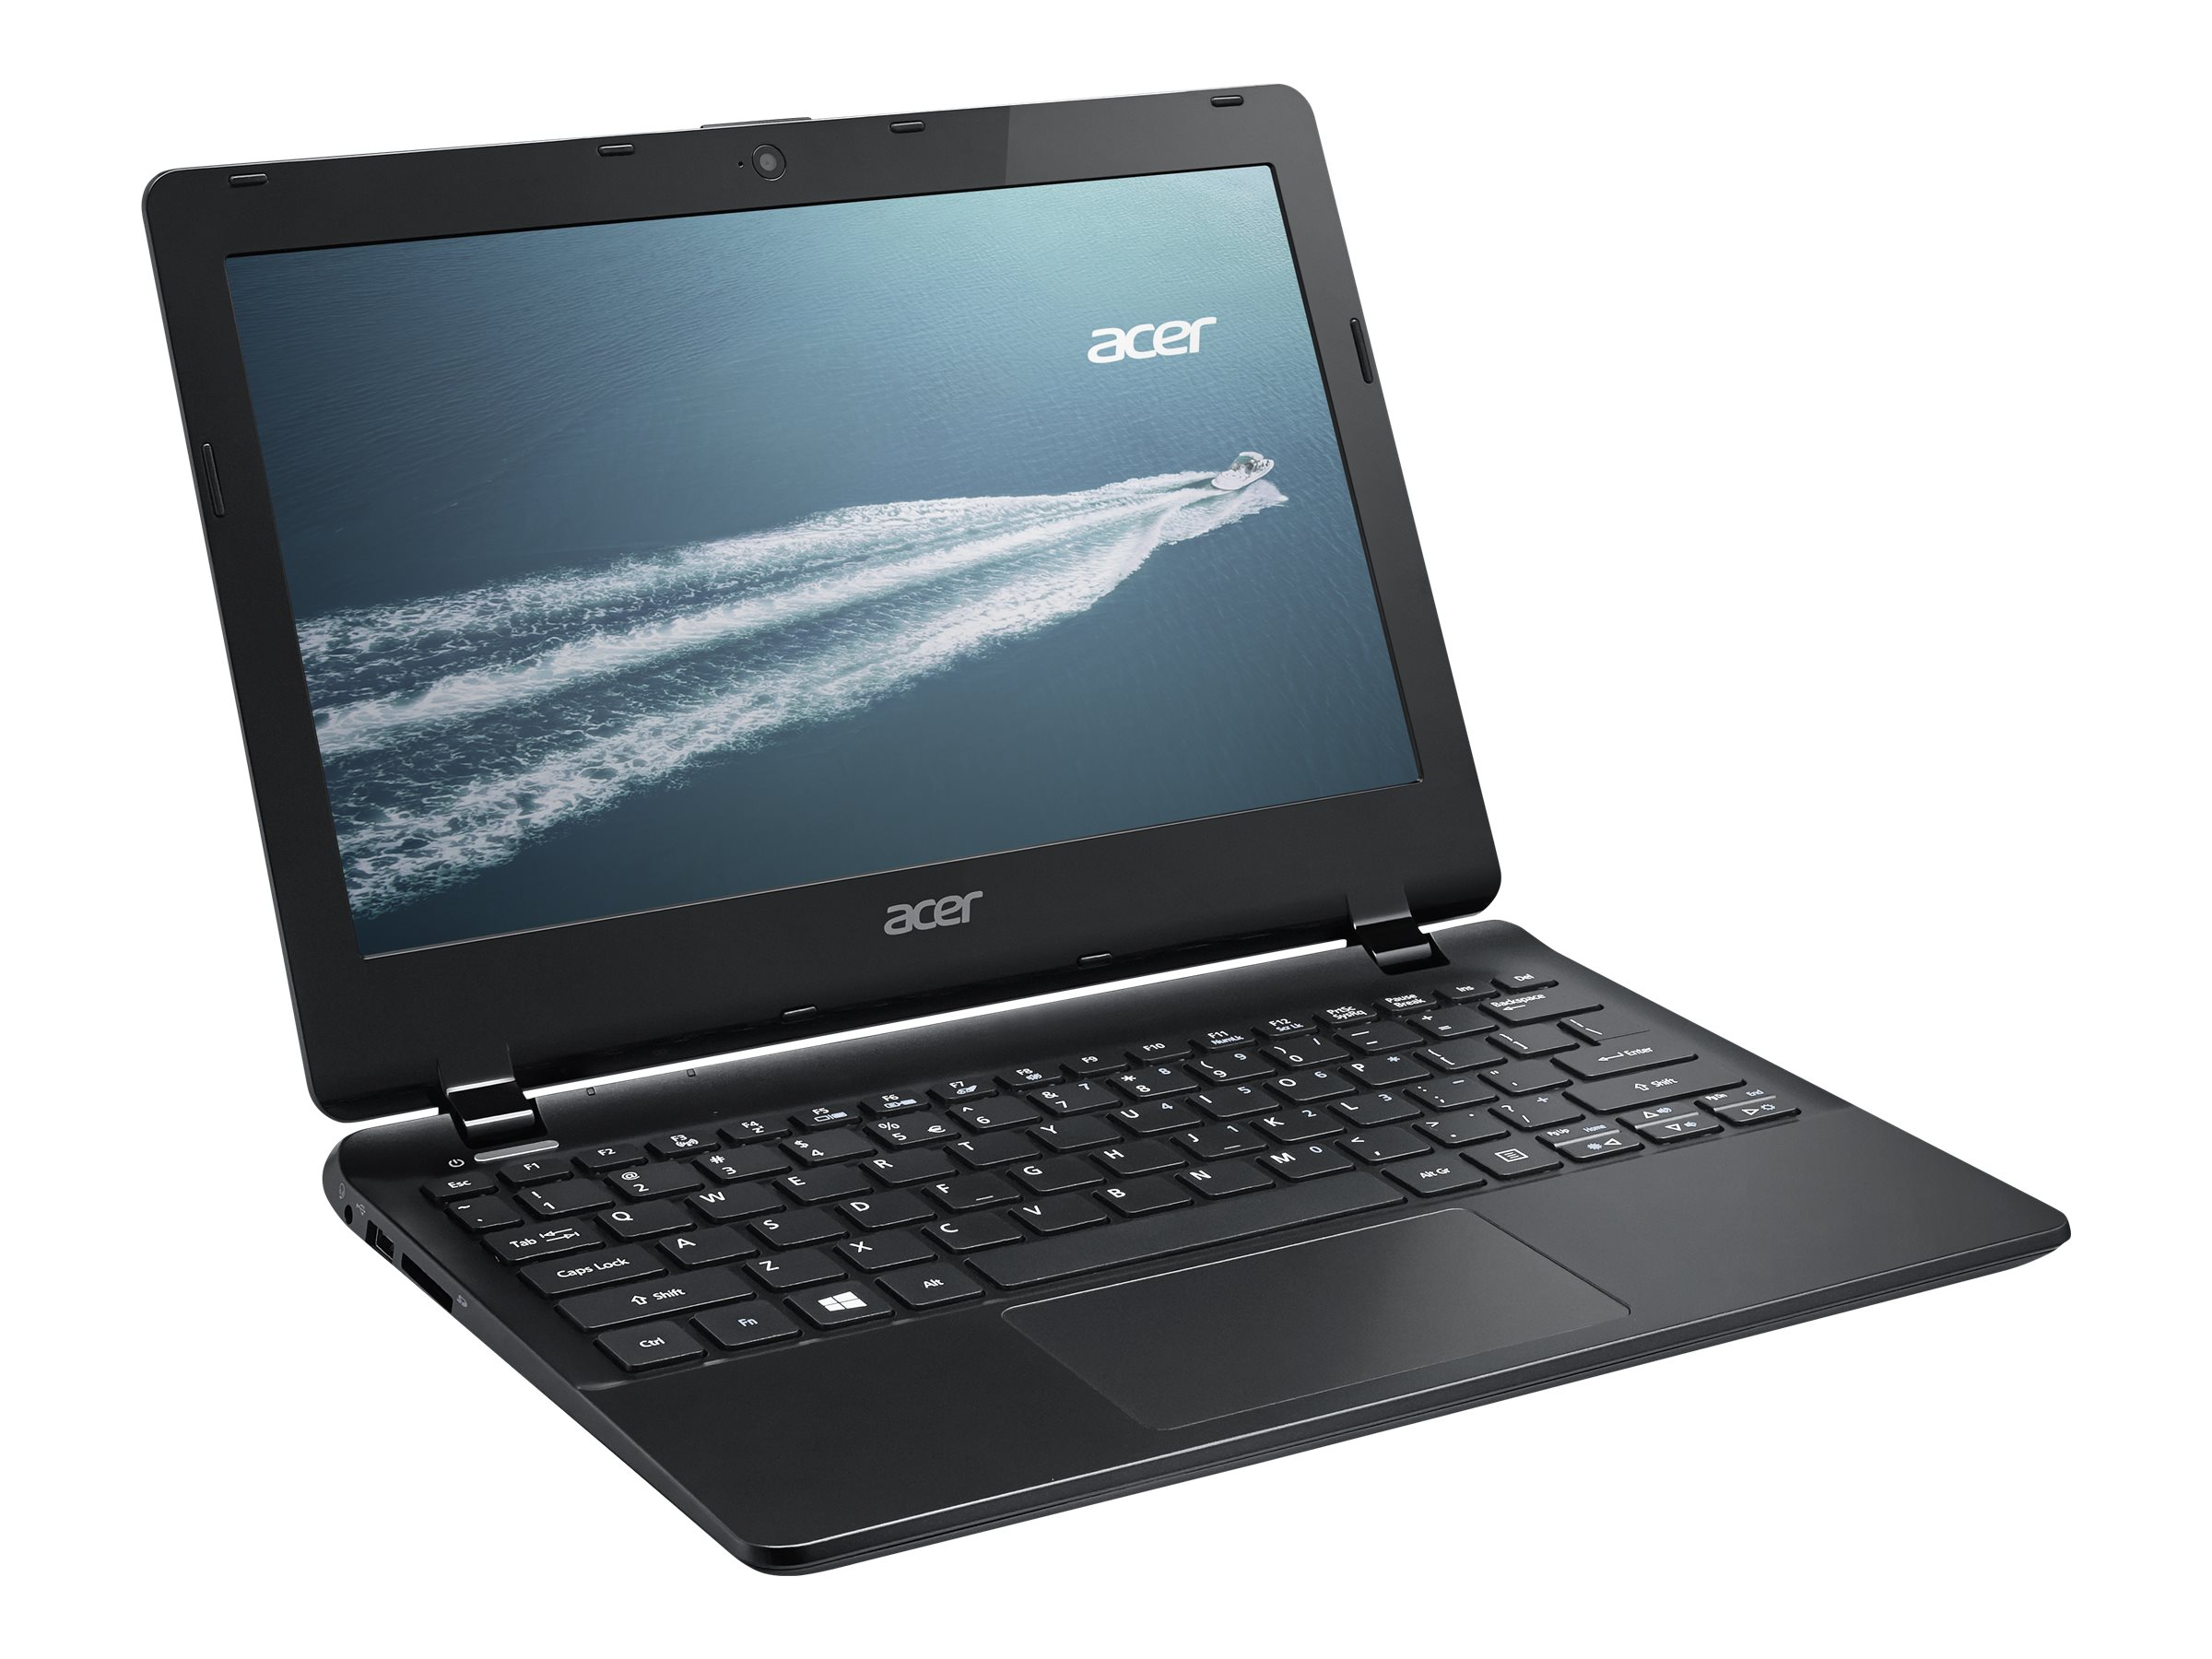 Acer TravelMate B115-MP-C6HB Celeron N2940 1.83GHz 4GB 500GB ac BT 11.6 HD MT W8.1P64, NX.VA2AA.005